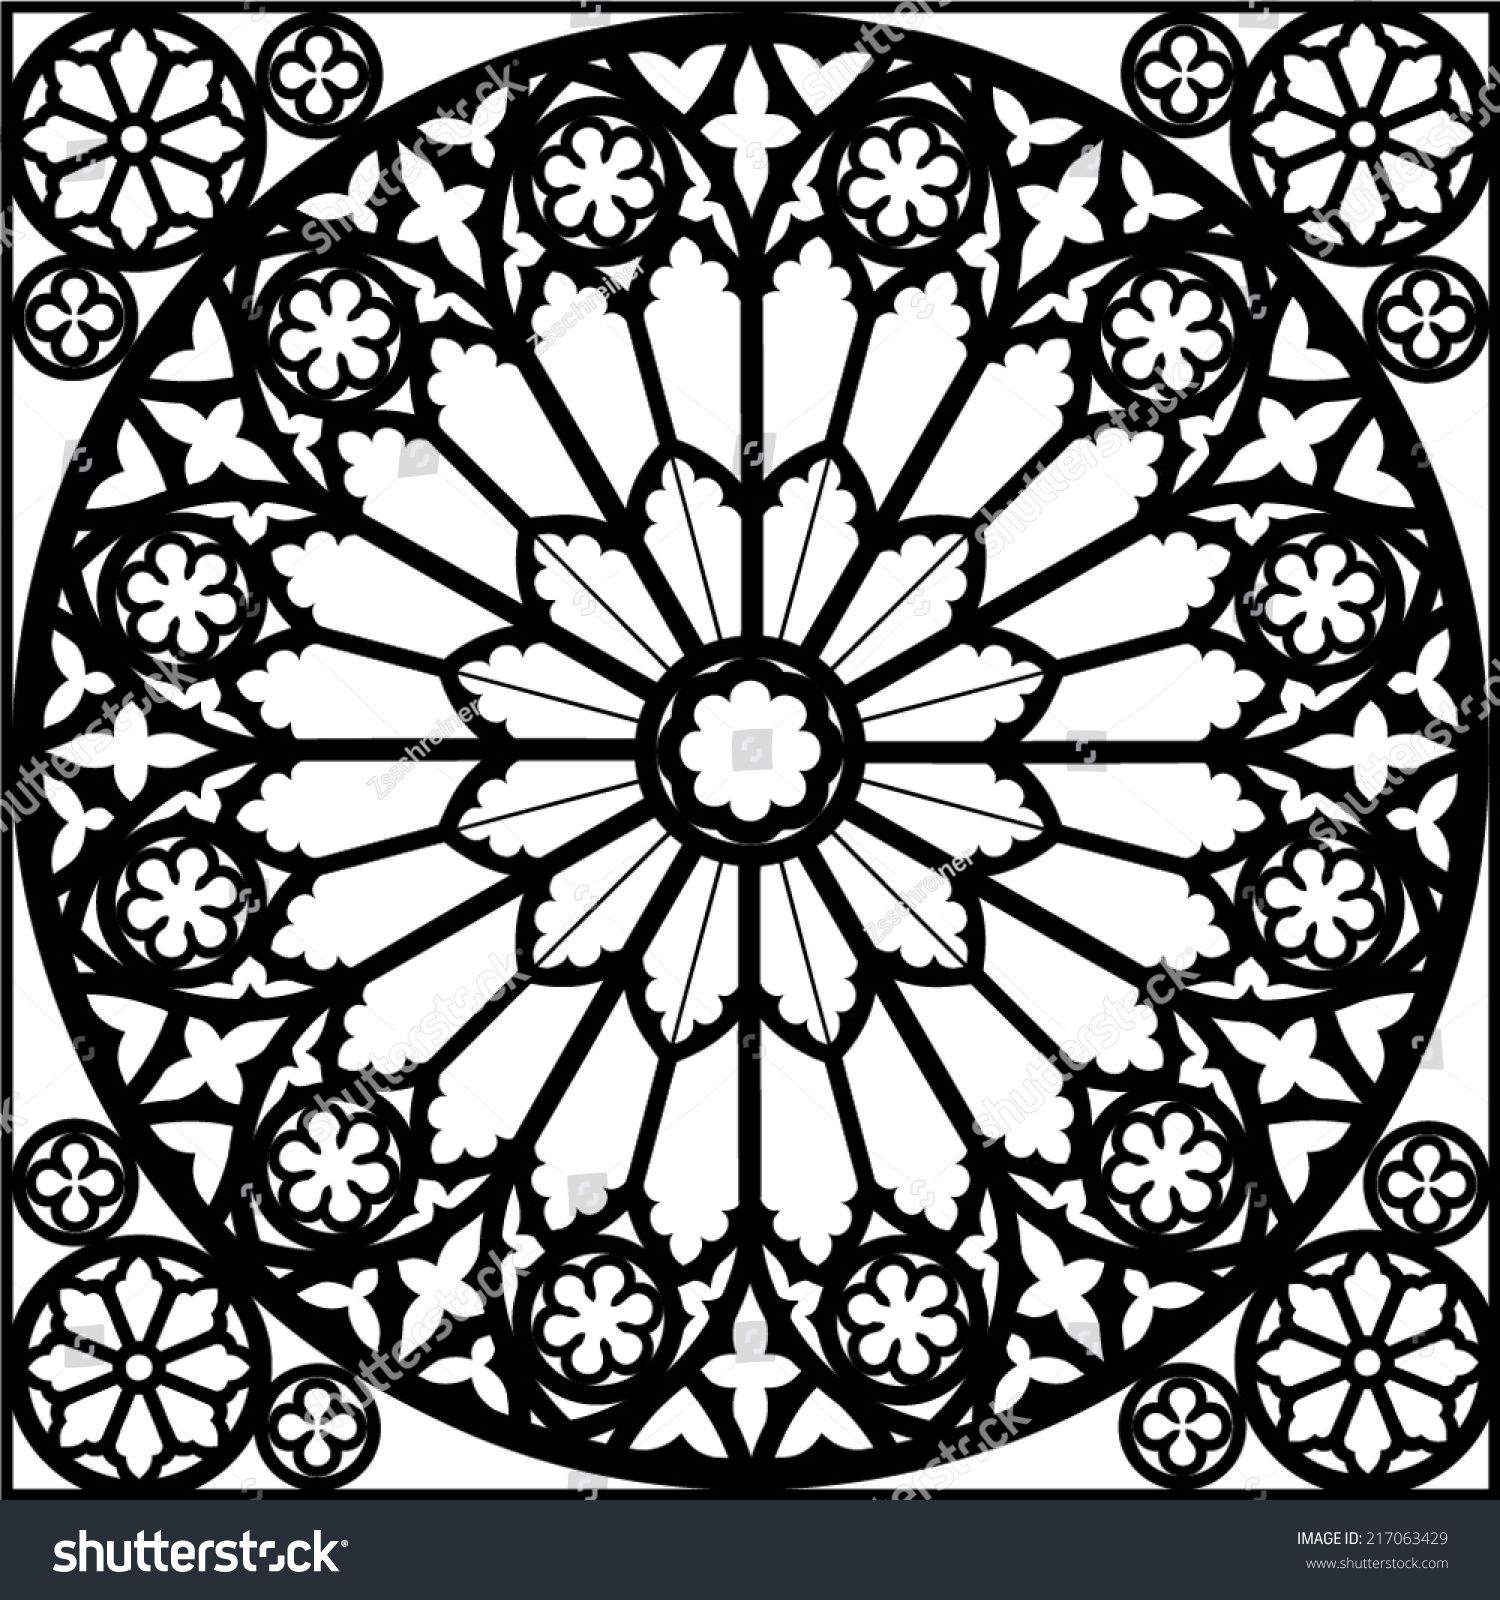 Silhouette Rose Window Gothic Vector Illustration Y Tưởng Hinh